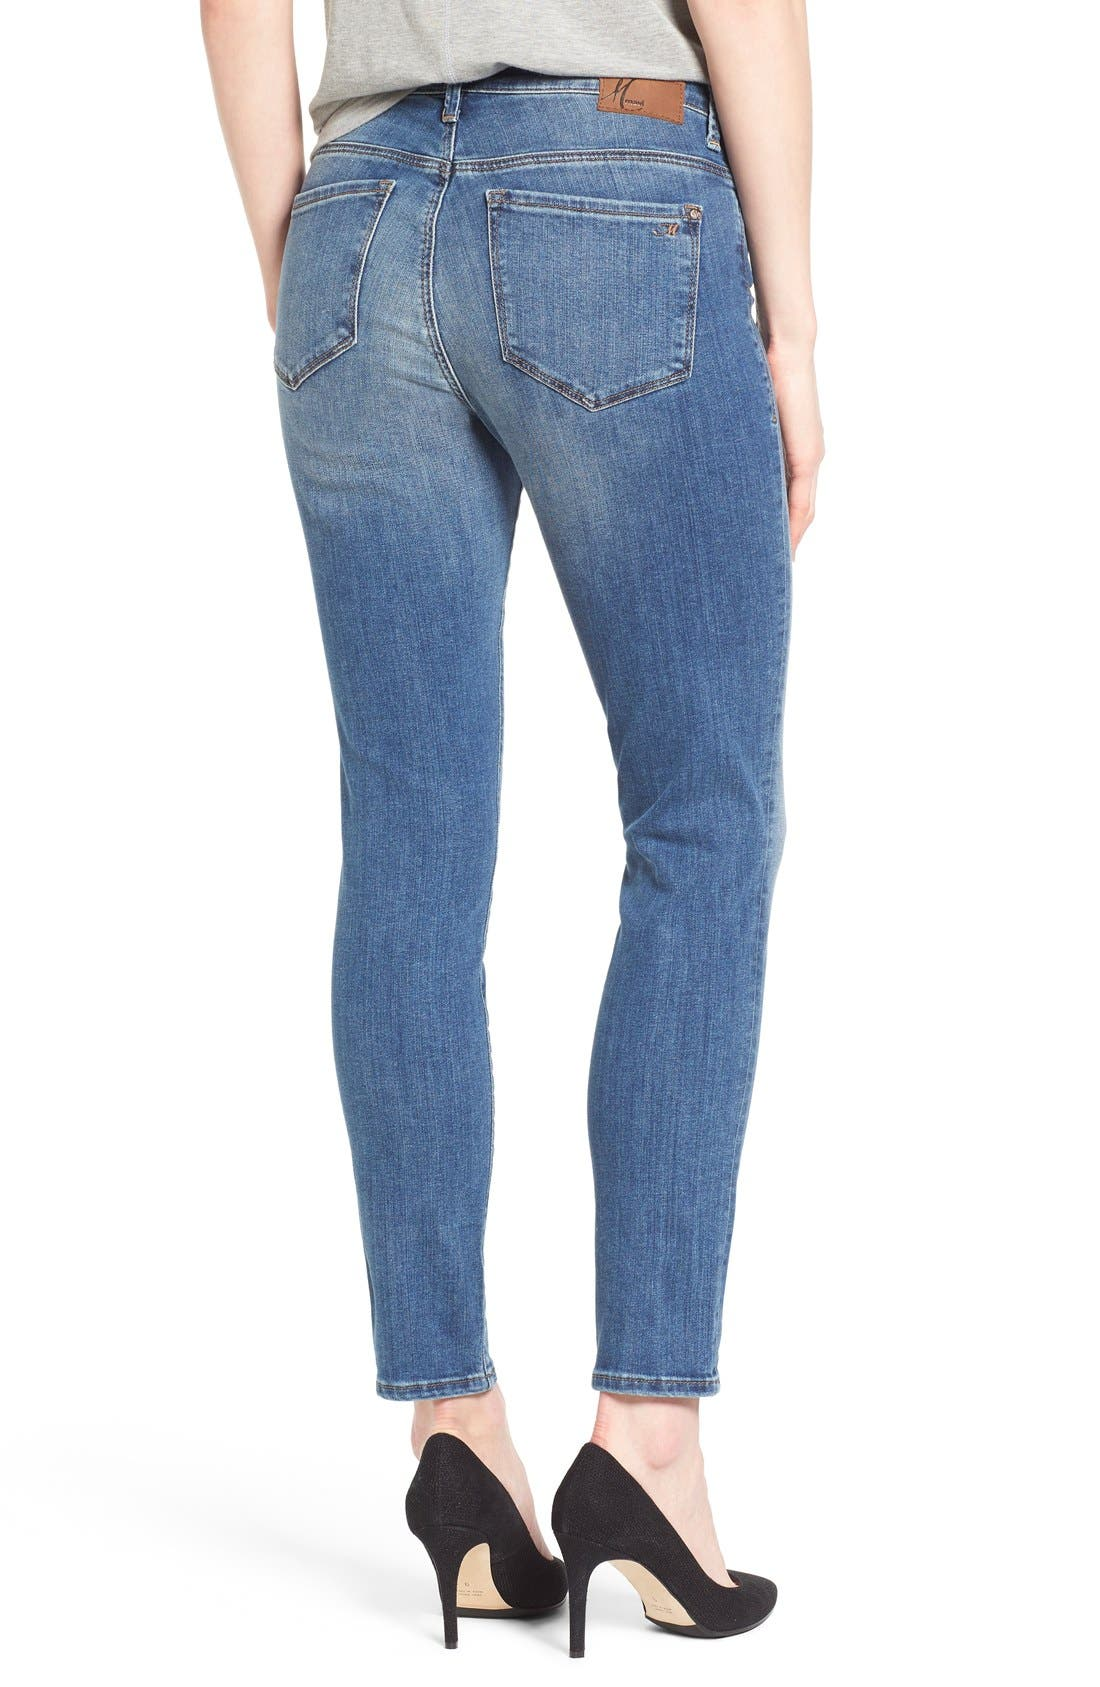 'Alissa' Stretch Slim Ankle Jeans,                             Alternate thumbnail 2, color,                             Light Blue